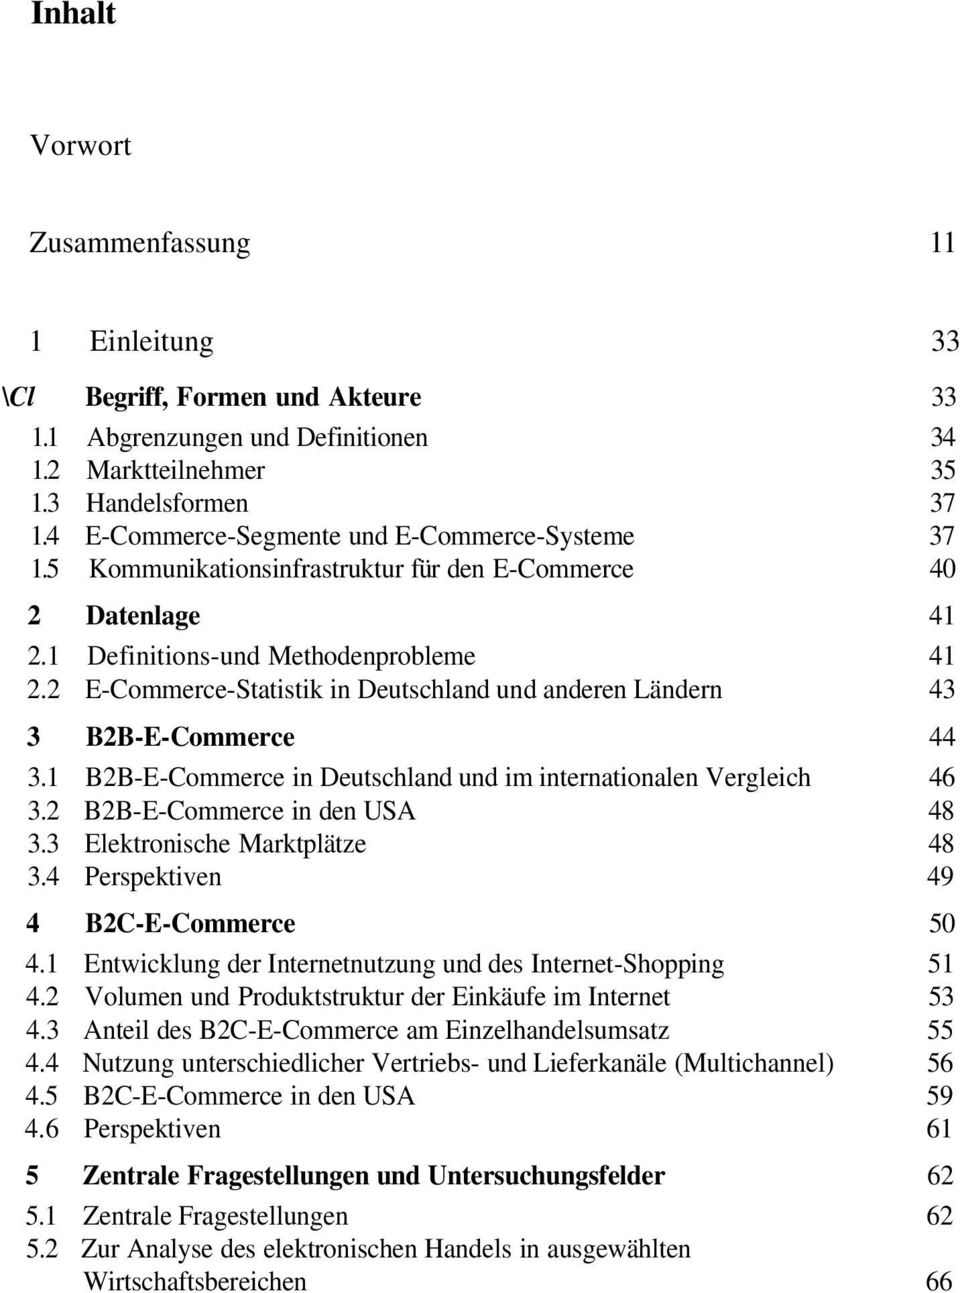 2 E-Commerce-Statistik in Deutschland und anderen Ländern 43 3 B2B-E-Commerce 44 3.1 B2B-E-Commerce in Deutschland und im internationalen Vergleich 46 3.2 B2B-E-Commerce in den USA 48 3.